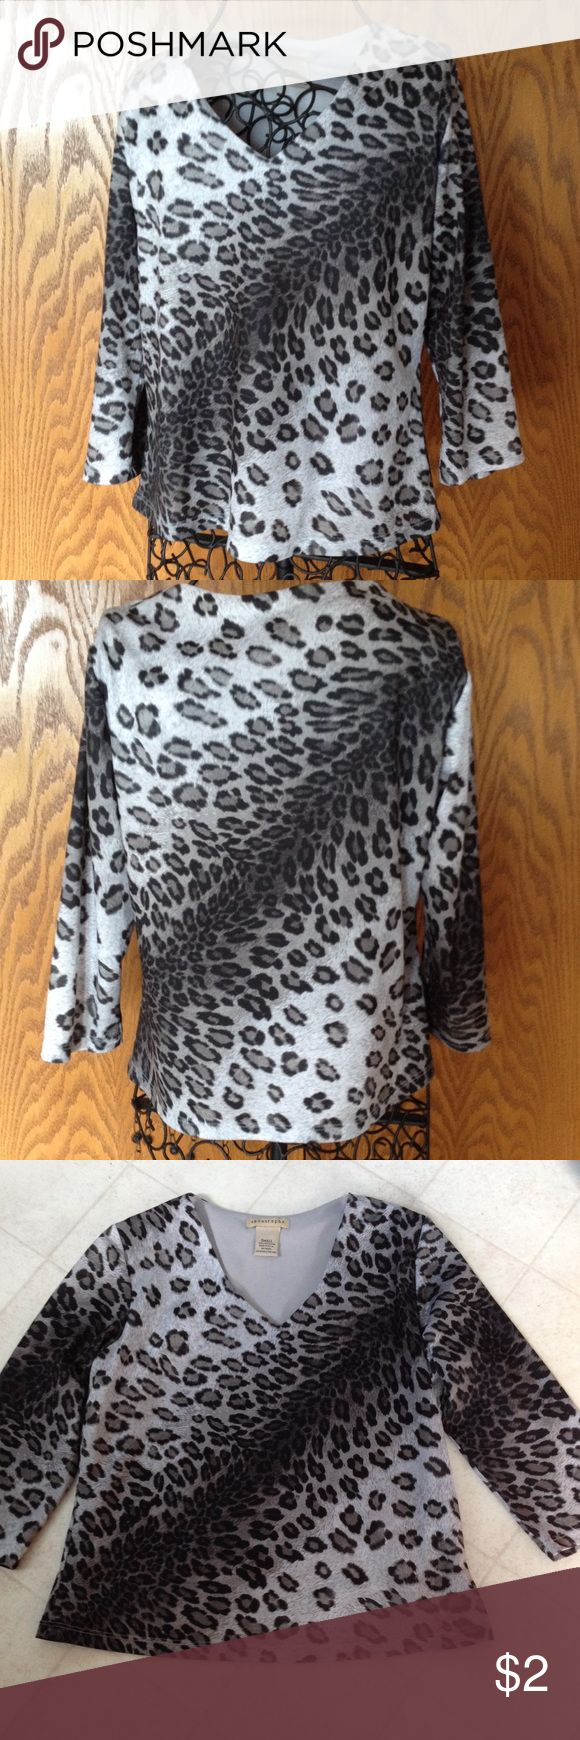 """Apostrophe animal print top with 3/4 sleeves V neck top is lined in front and back. 100% polyester and gently worn. Length is 20"""", across front is 17 1/2"""". Apostrophe Tops"""